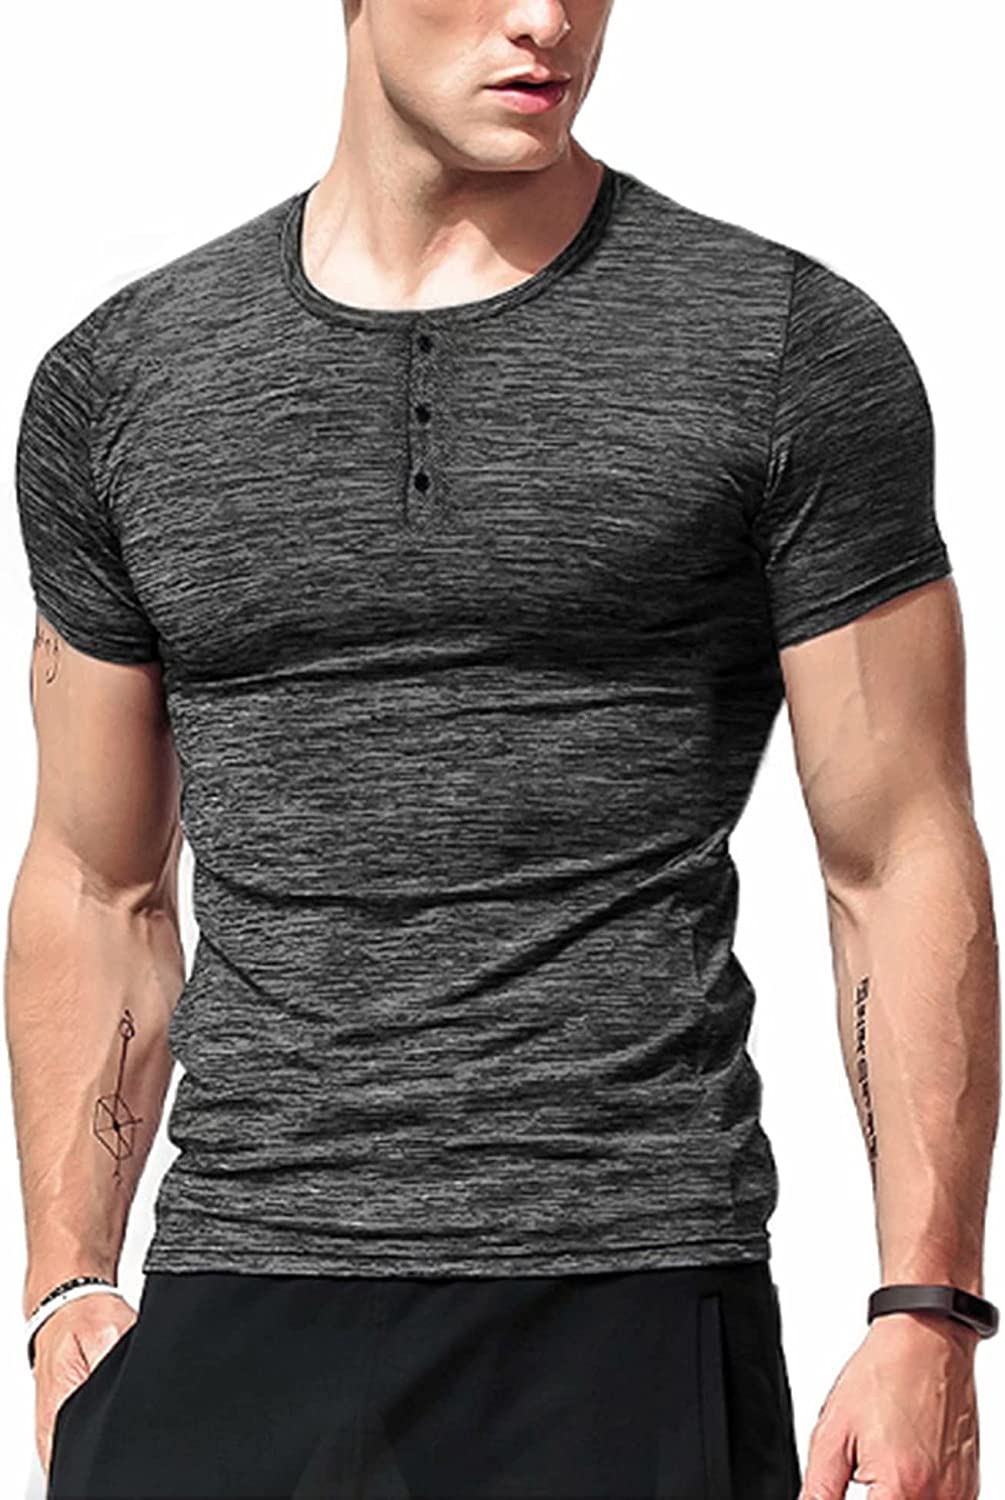 LecGee Men's Sale SALE% OFF Clearance SALE Limited time Workout Shirts Short Active Henley Sleeve Dry Quick